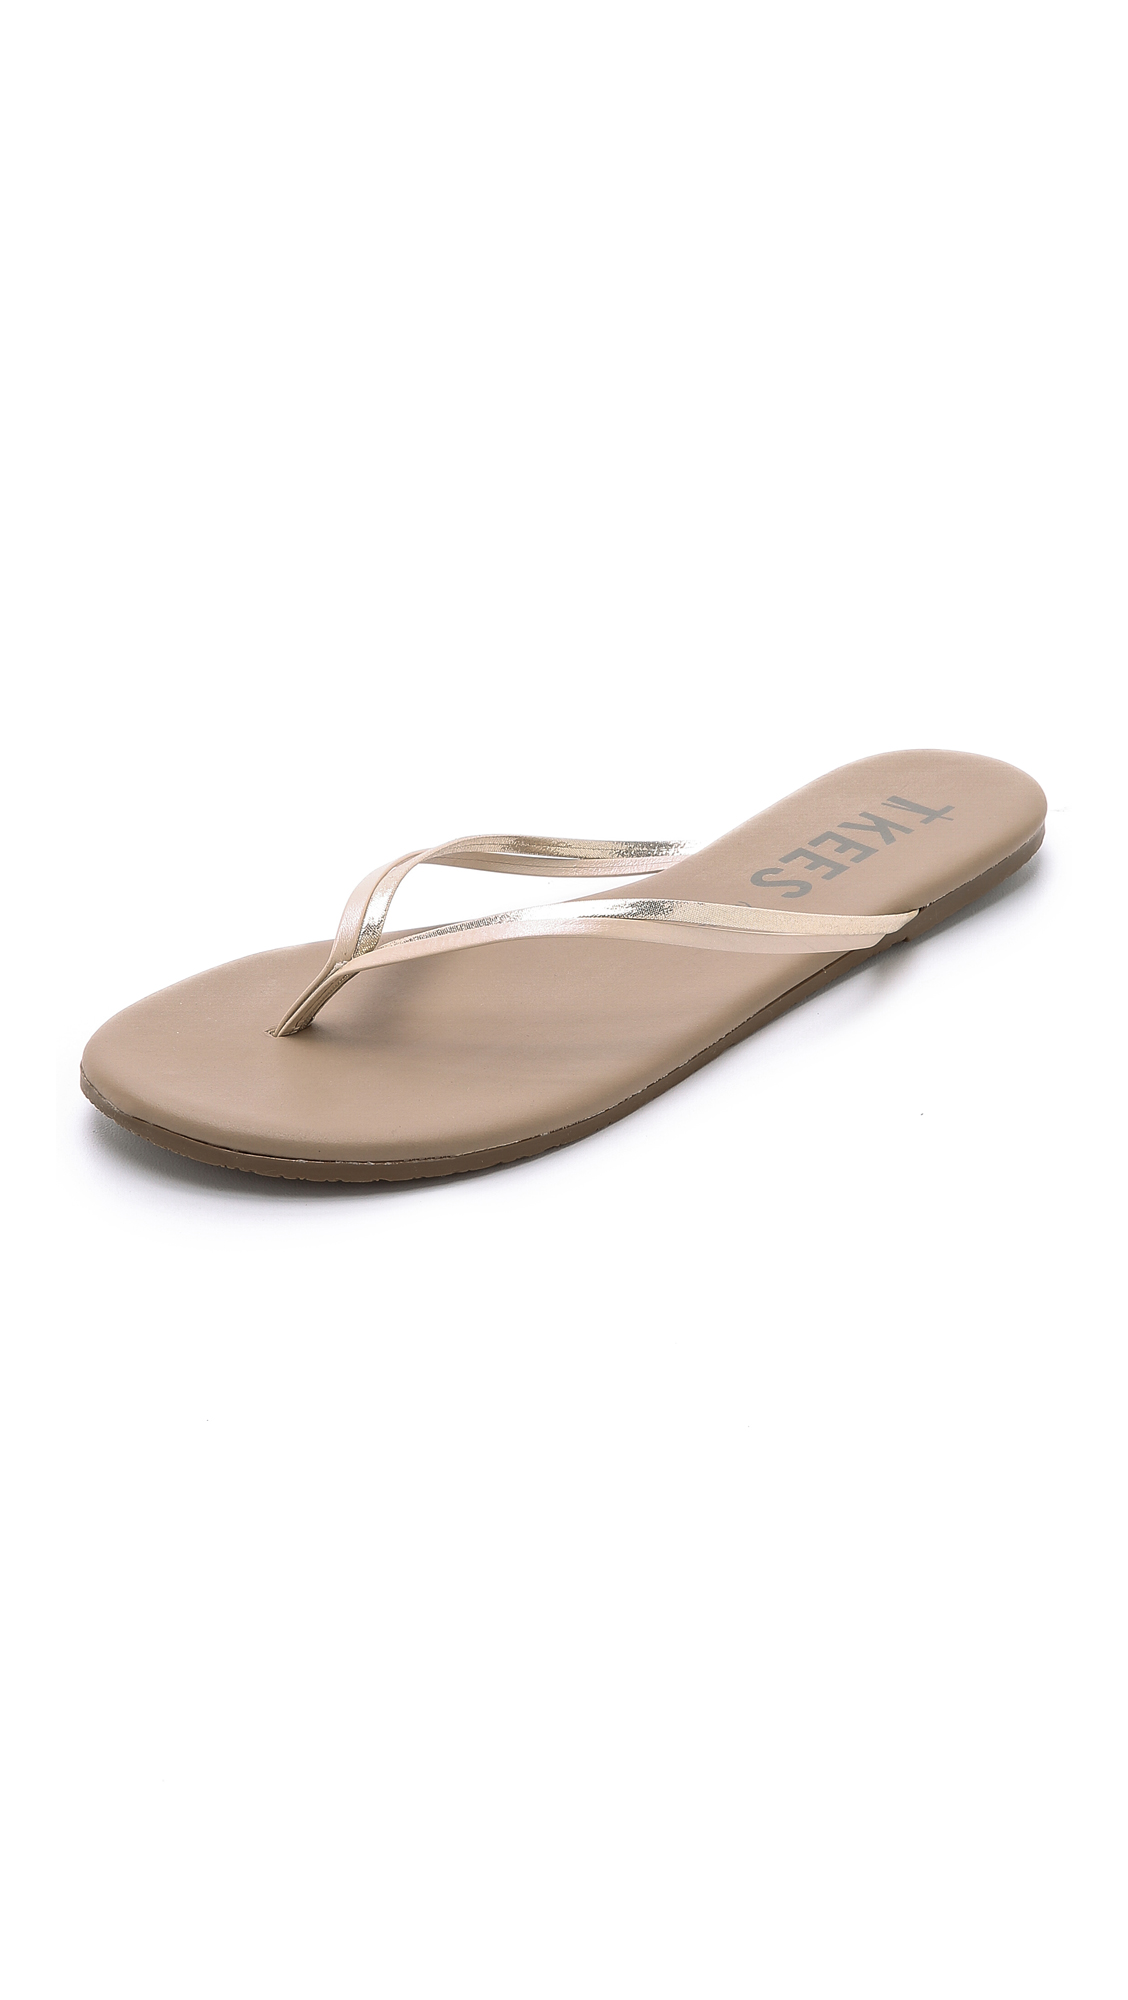 tkees female tkees duos flip flops oyster shell